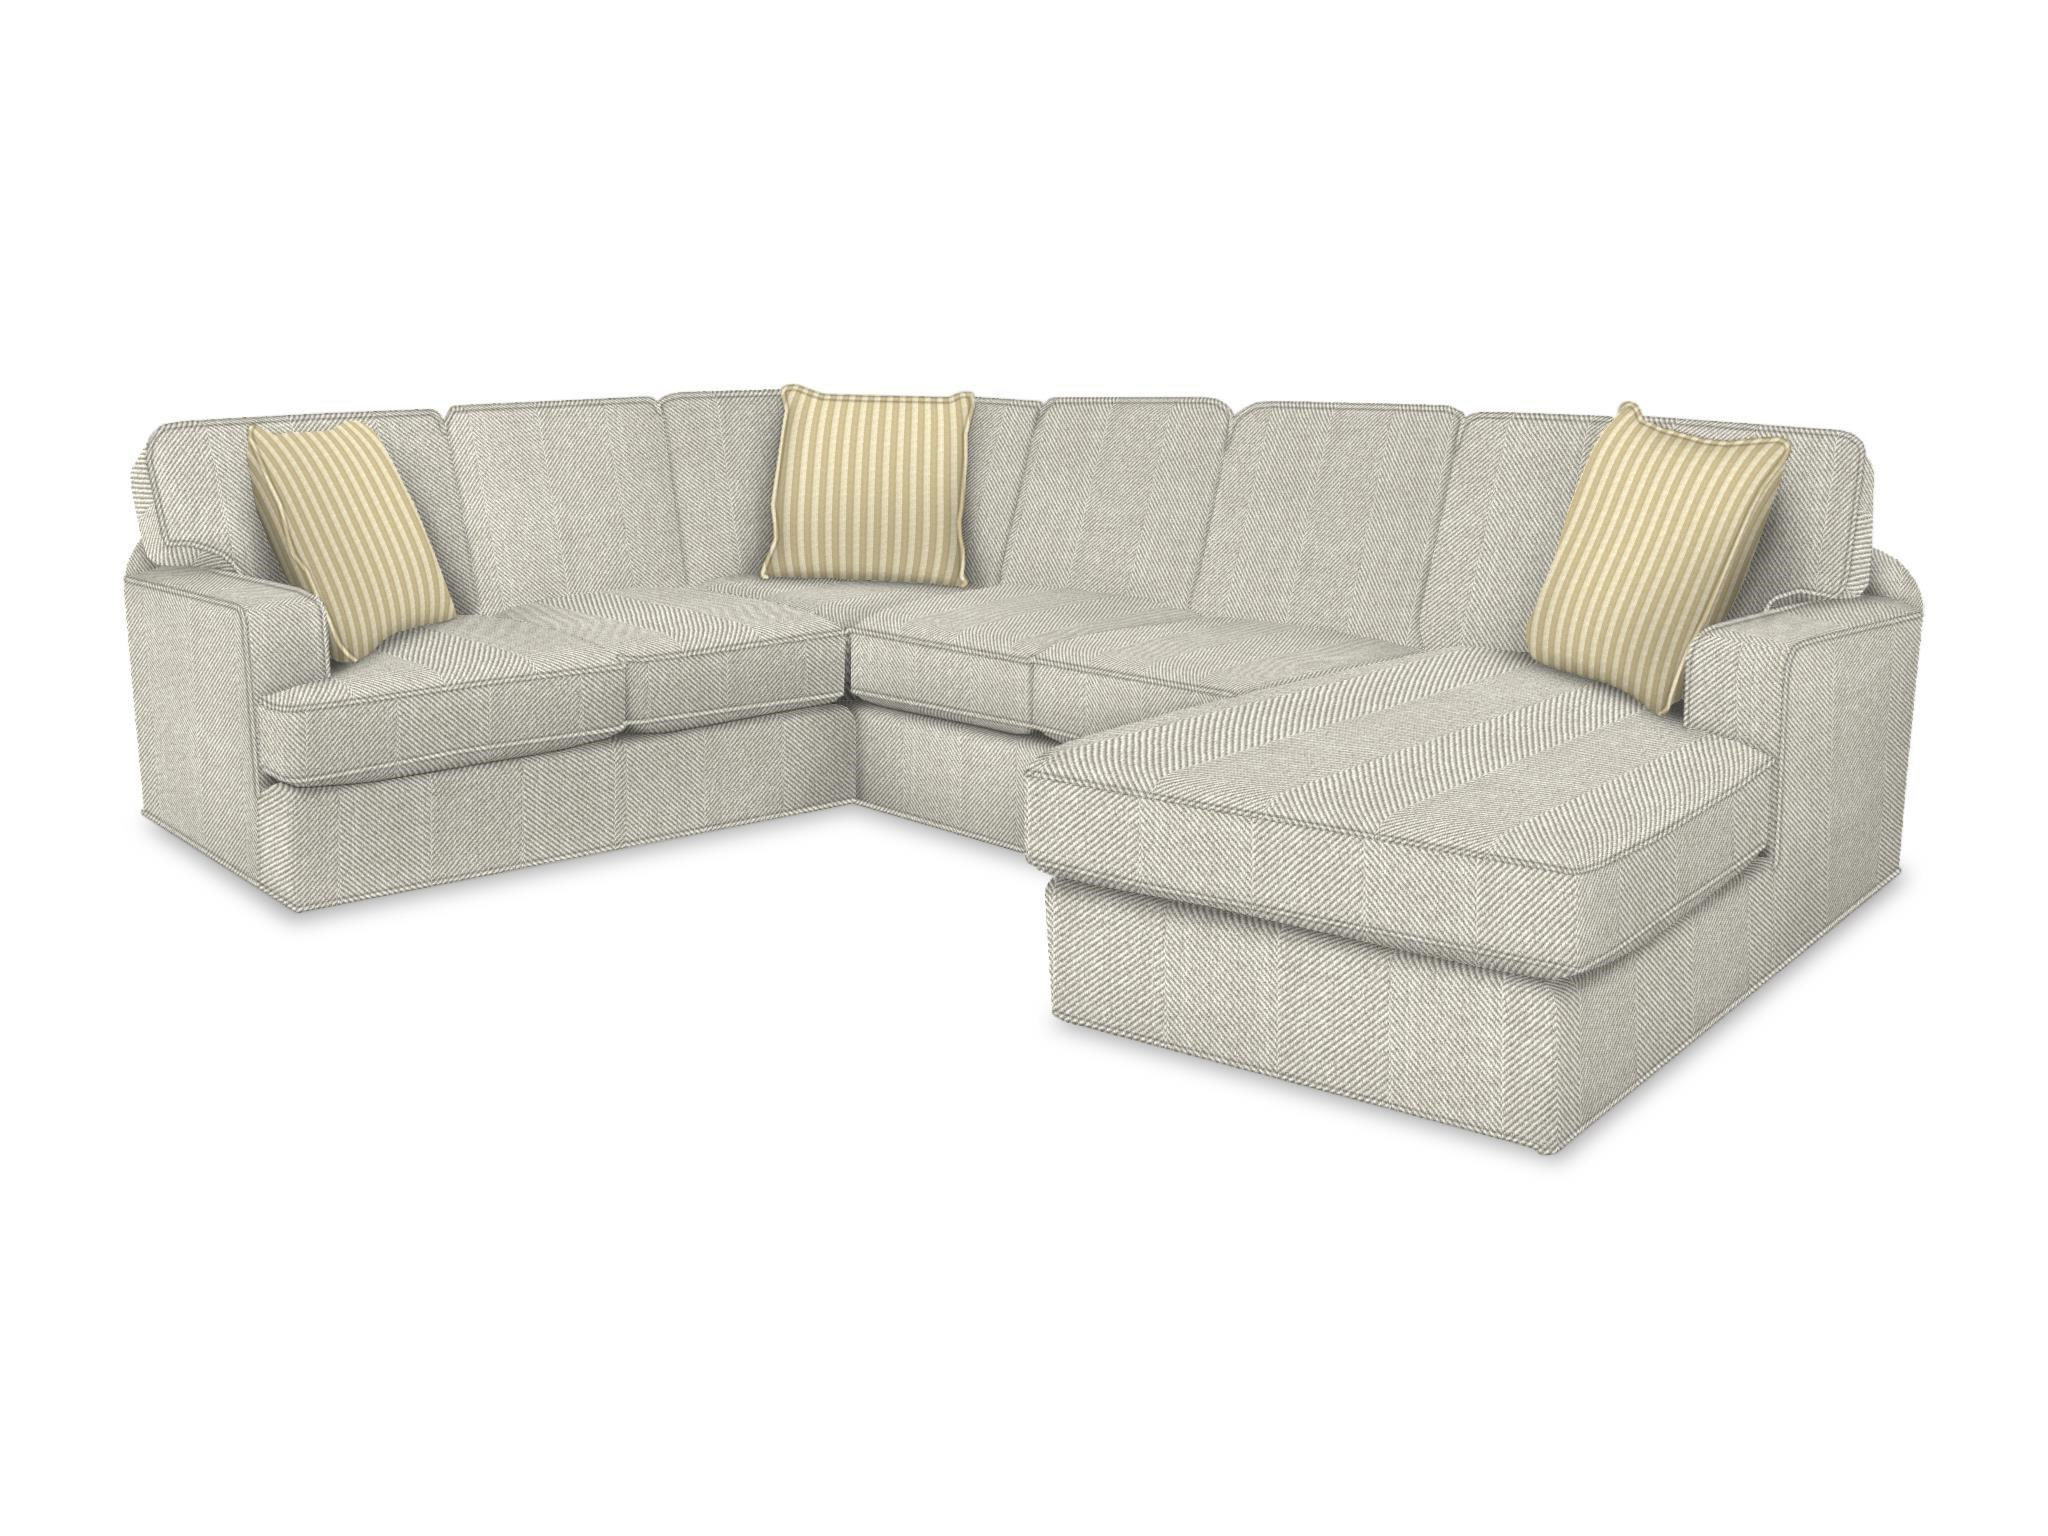 England Rouse Sectional Sofa - Item Number: 4R00-05+43+64